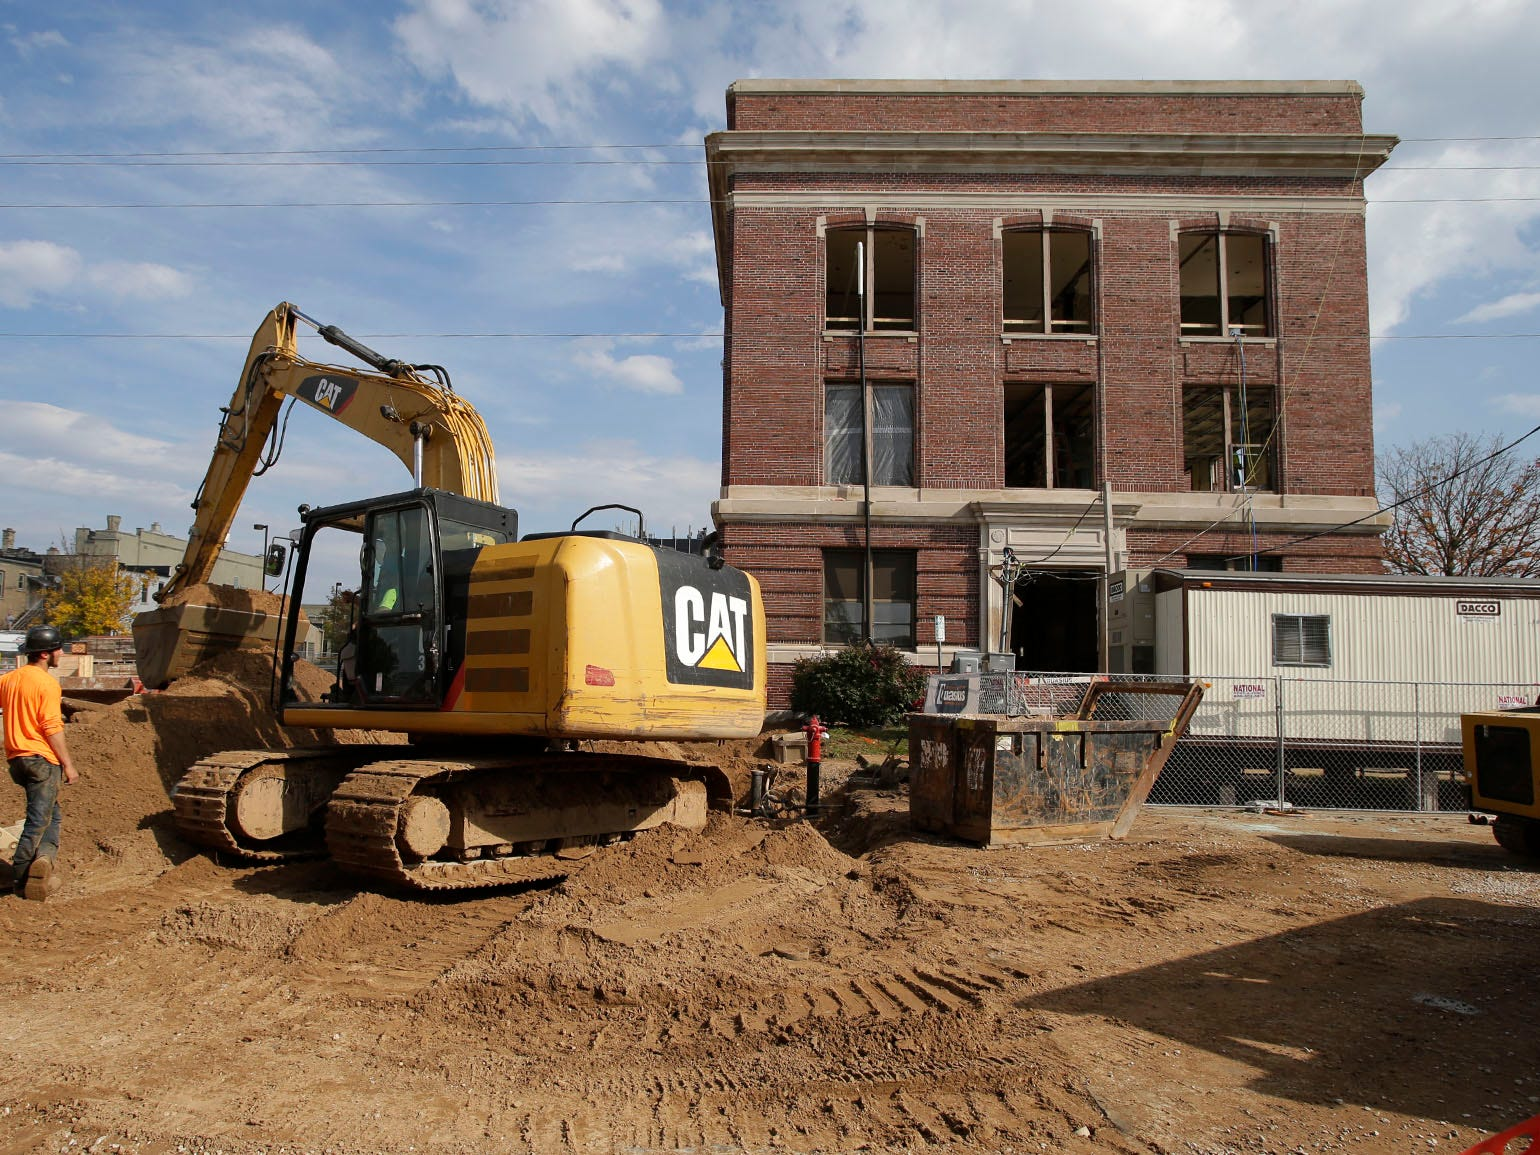 Road construction equipment works on infrastructure near Sheboygan City Hall as the building is being refurbished, Tuesday, October 9, 2018, in Sheboygan, Wis.